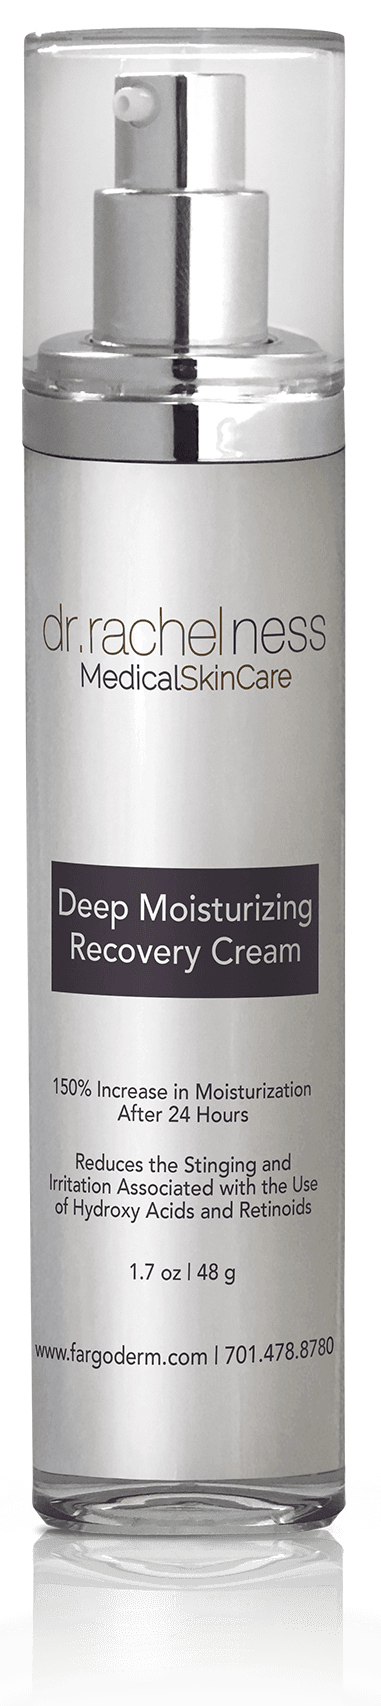 Intensive Recovery Cream